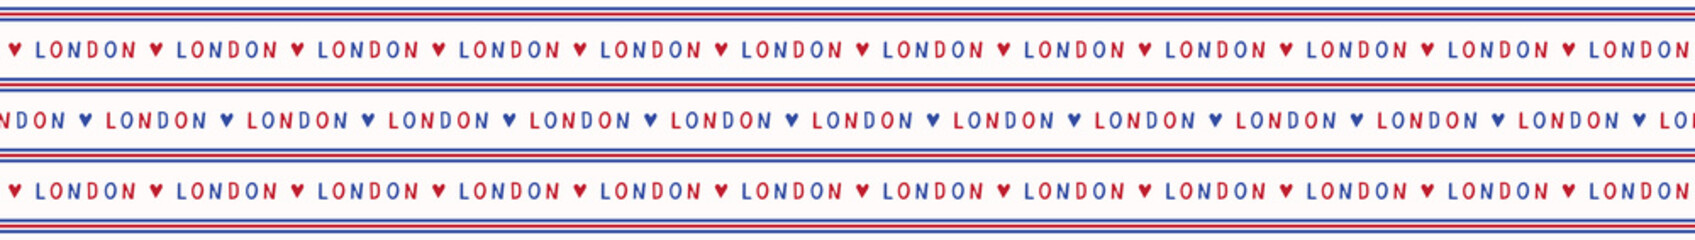 I love London lettering text seamless vector pattern. Famous historical british destination backdrop for travel vacation wallpaper, british uk sightseeing all over print. Typography in red blue white.